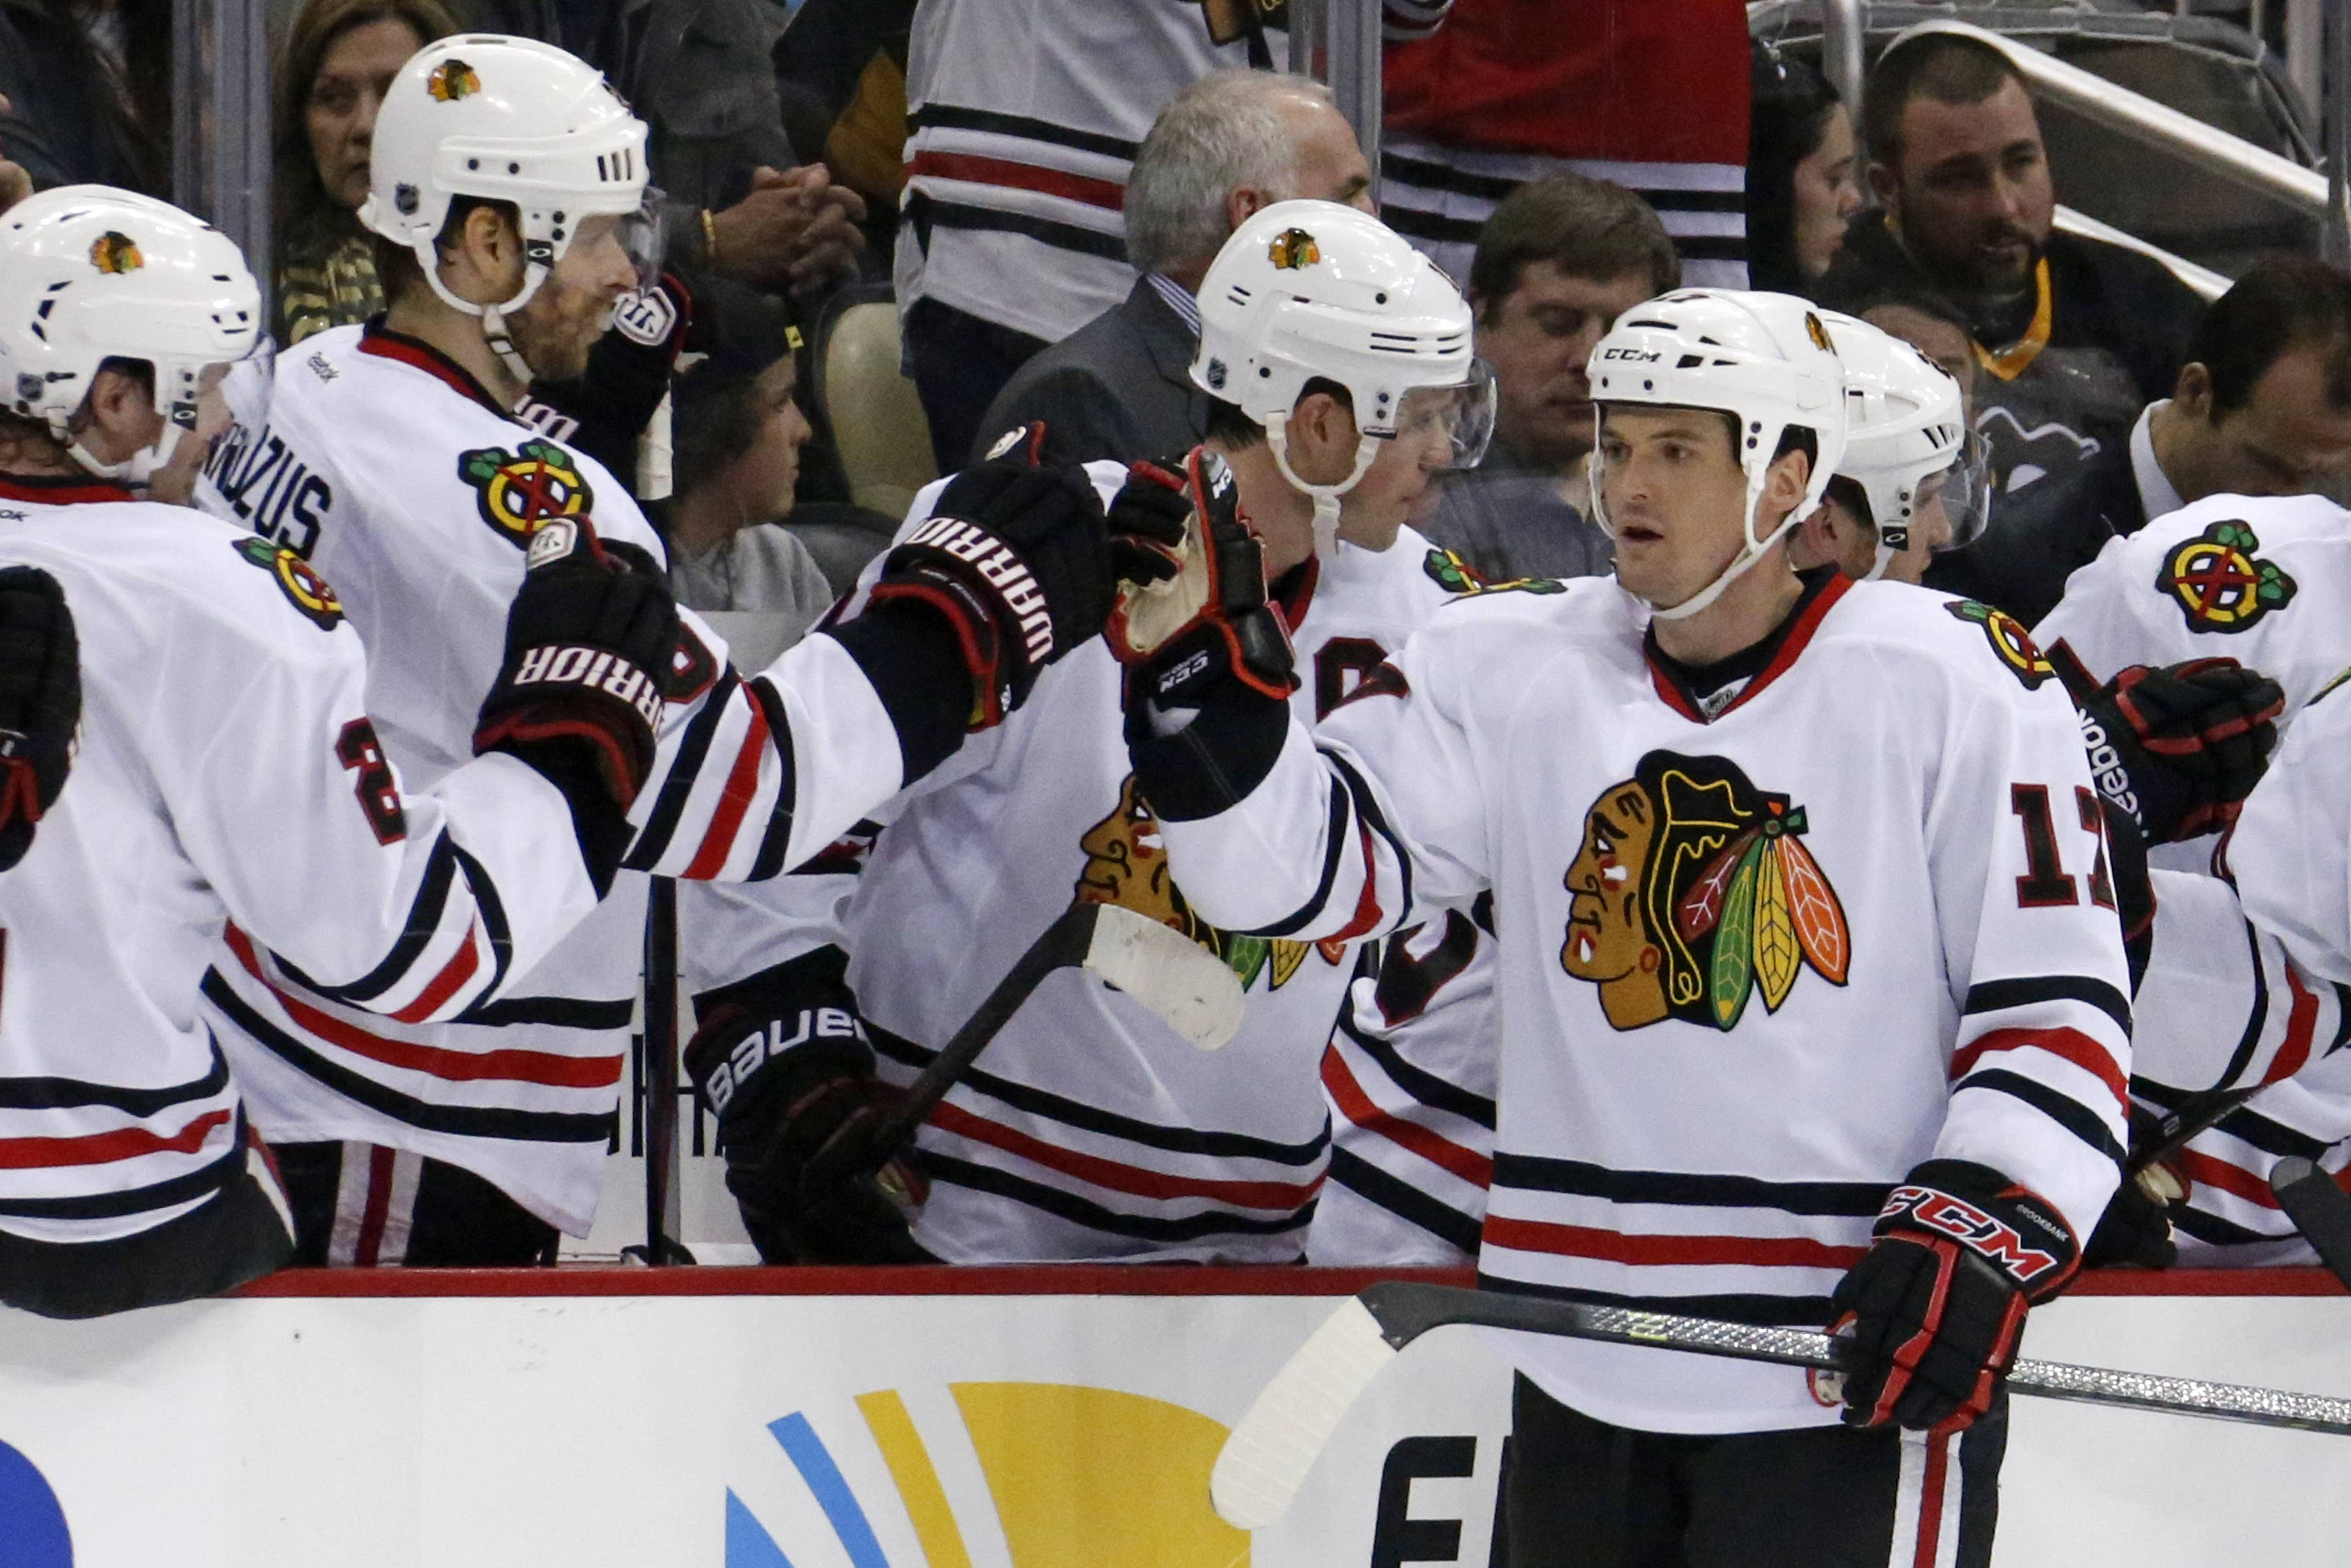 The Blackhawks' Sheldon Brookbank (17) celebrates with teammates as he returns to the bench after scoring in the second period of Sunday's game against the Pittsburgh Penguins in Pittsburgh,